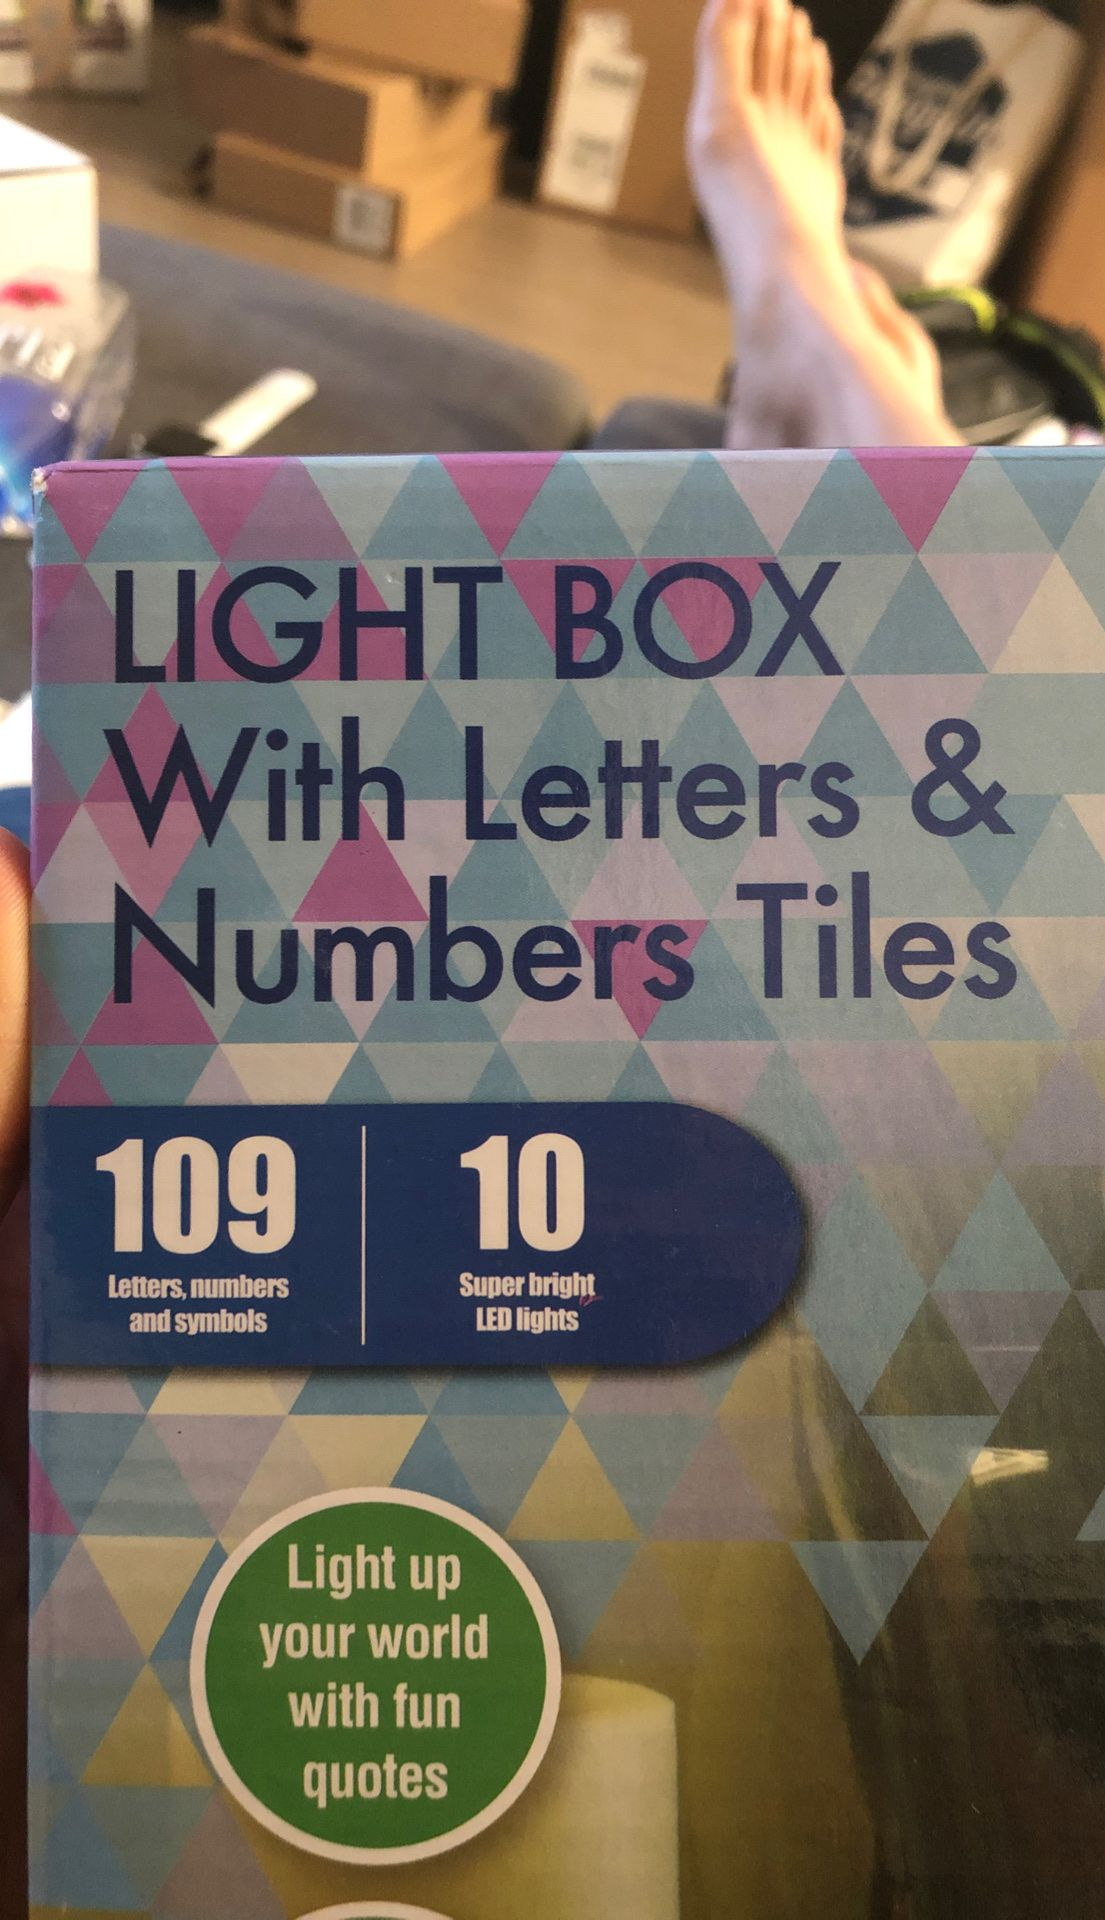 Brand new light box with letters and number tiles